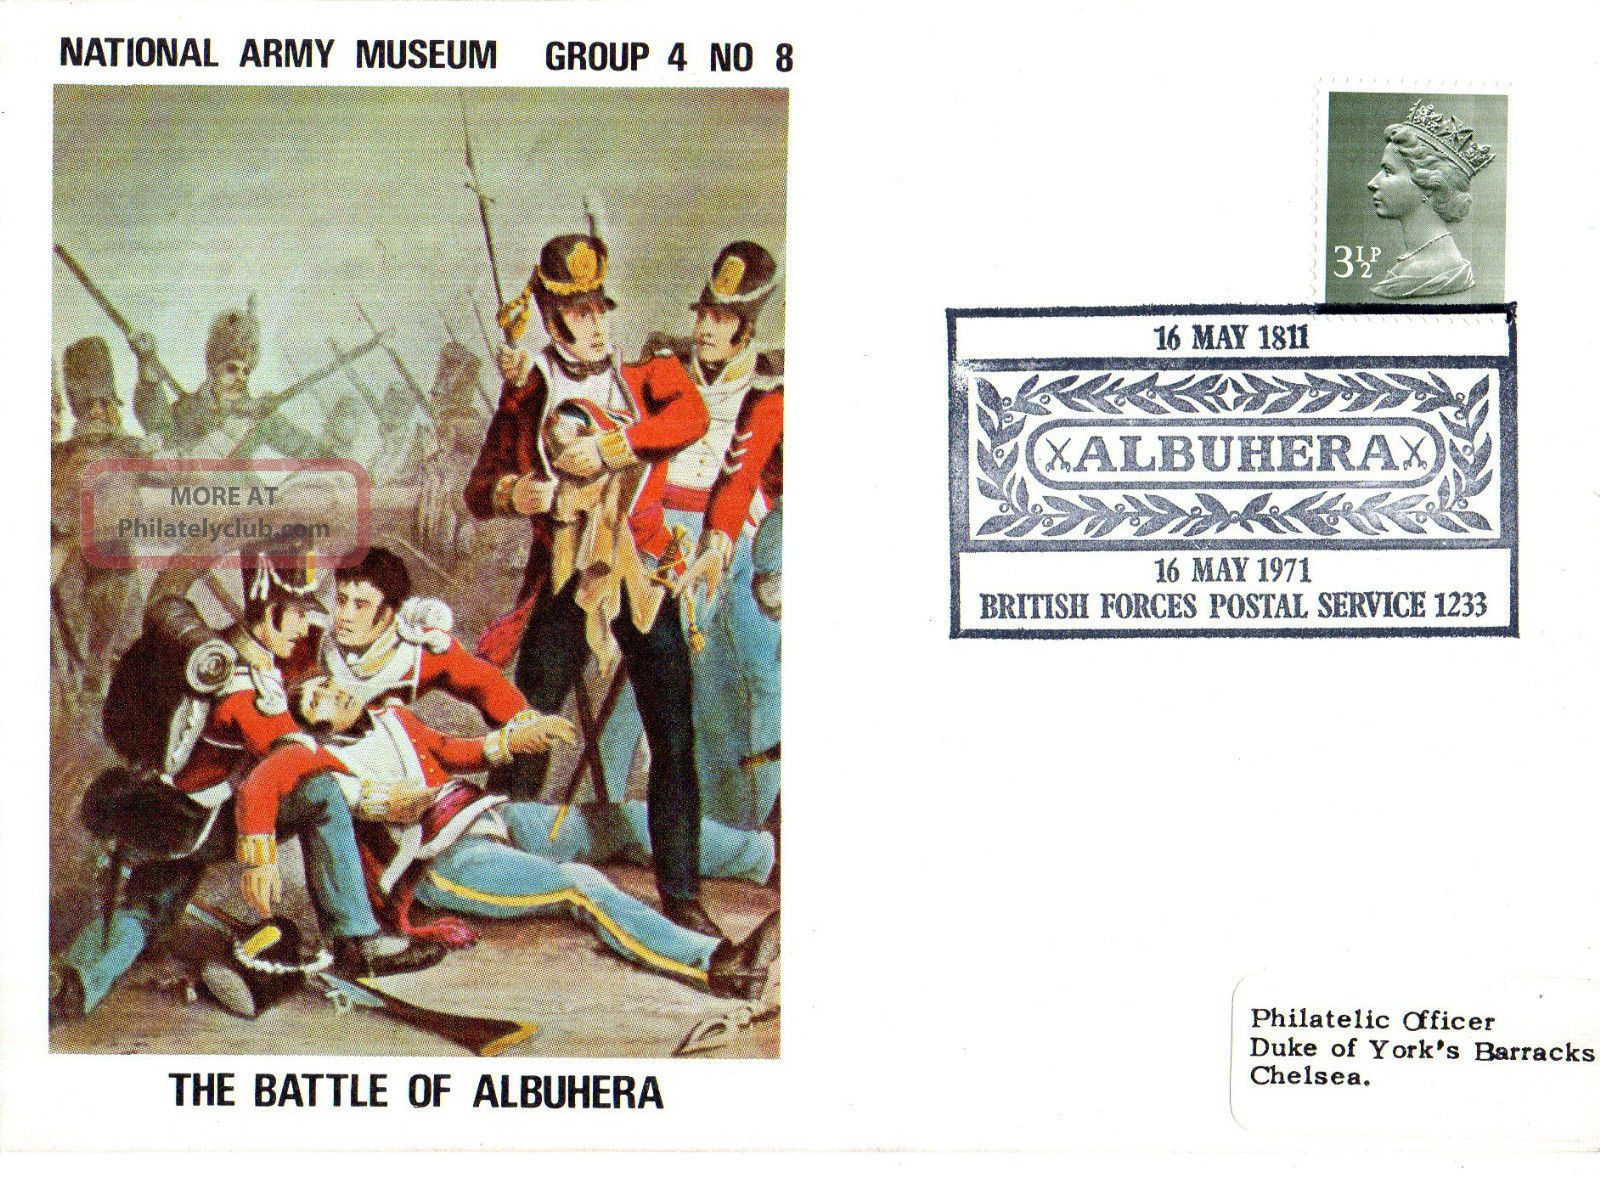 1971 Battle Of Albuhera 4/8 Army Museum Commemorative Cover Shs Topical Stamps photo